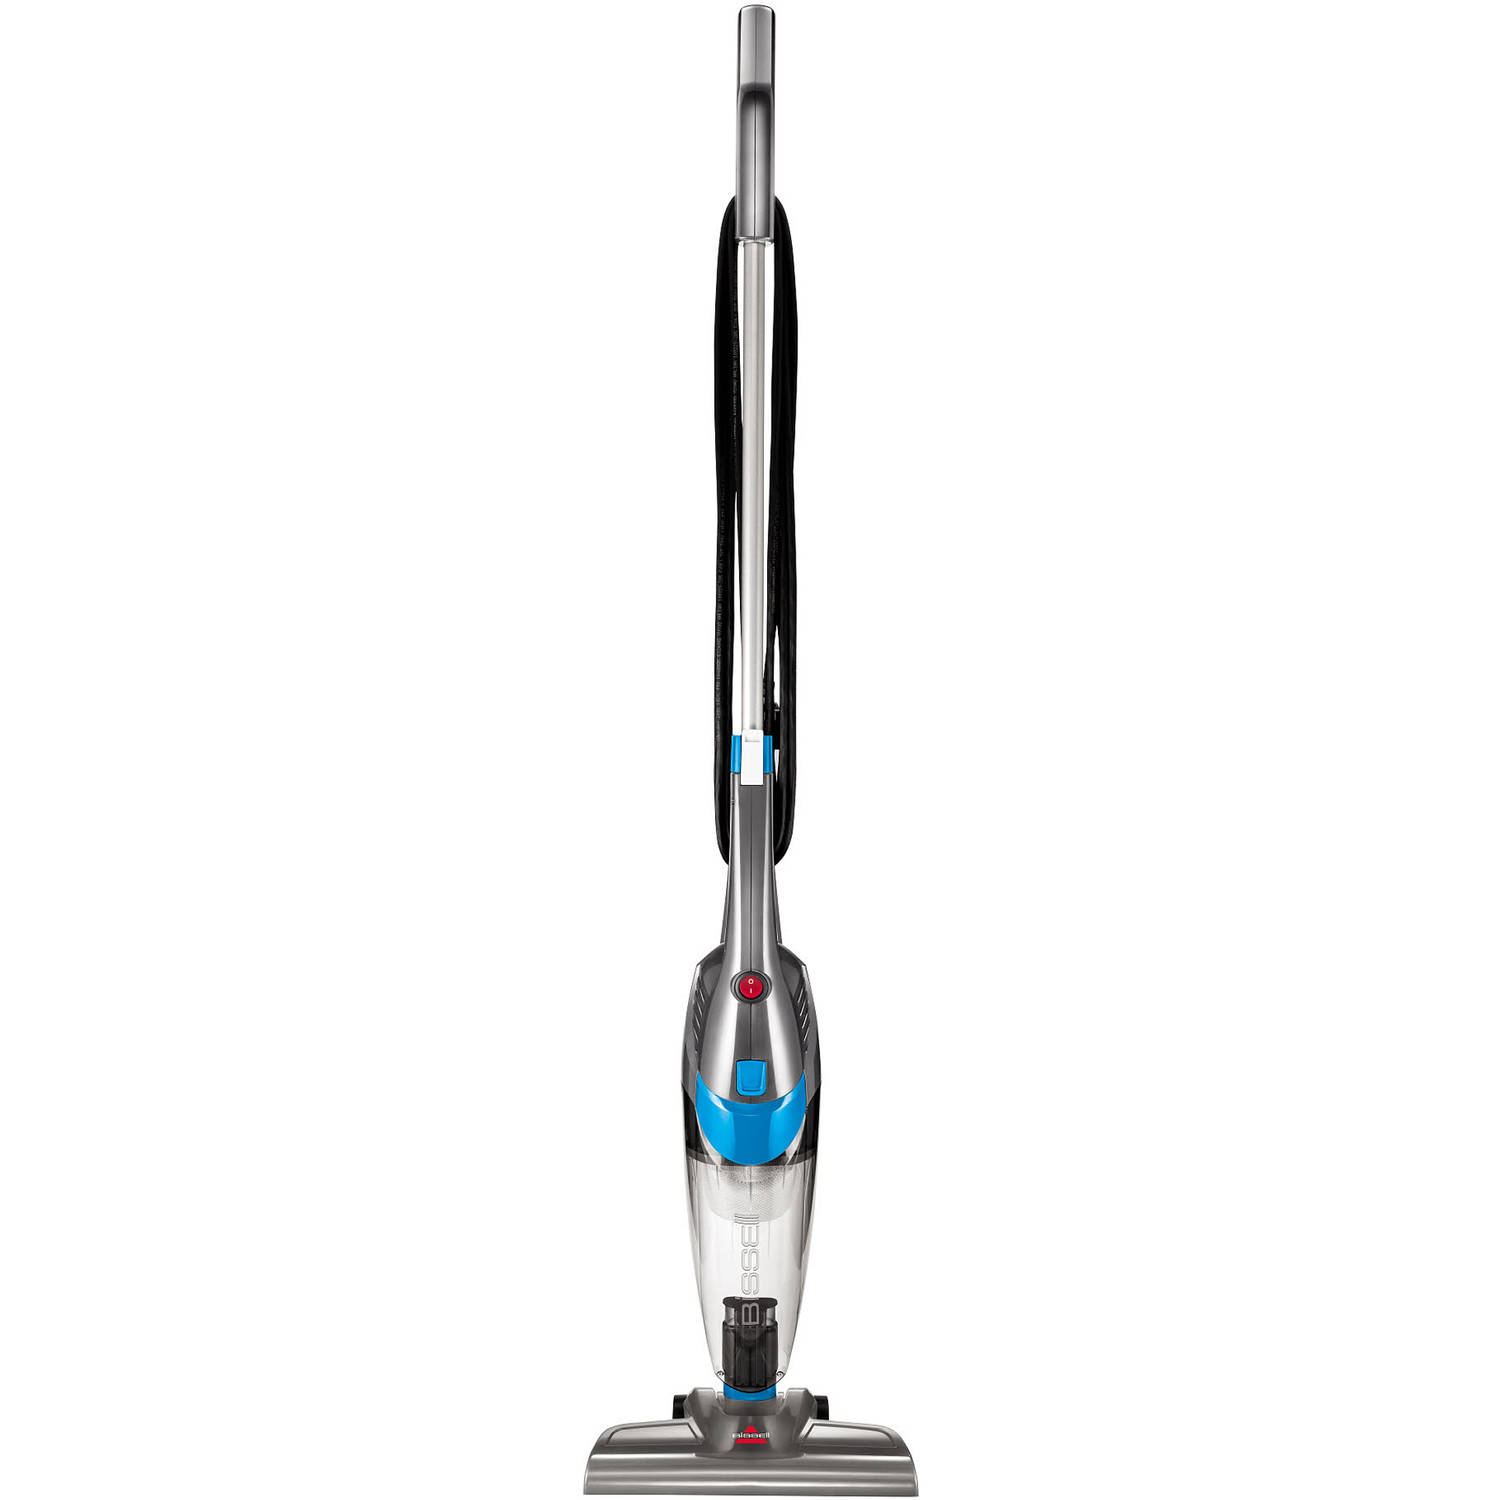 Bissell 3-in-1 Lightweight Corded Stick Vacuum